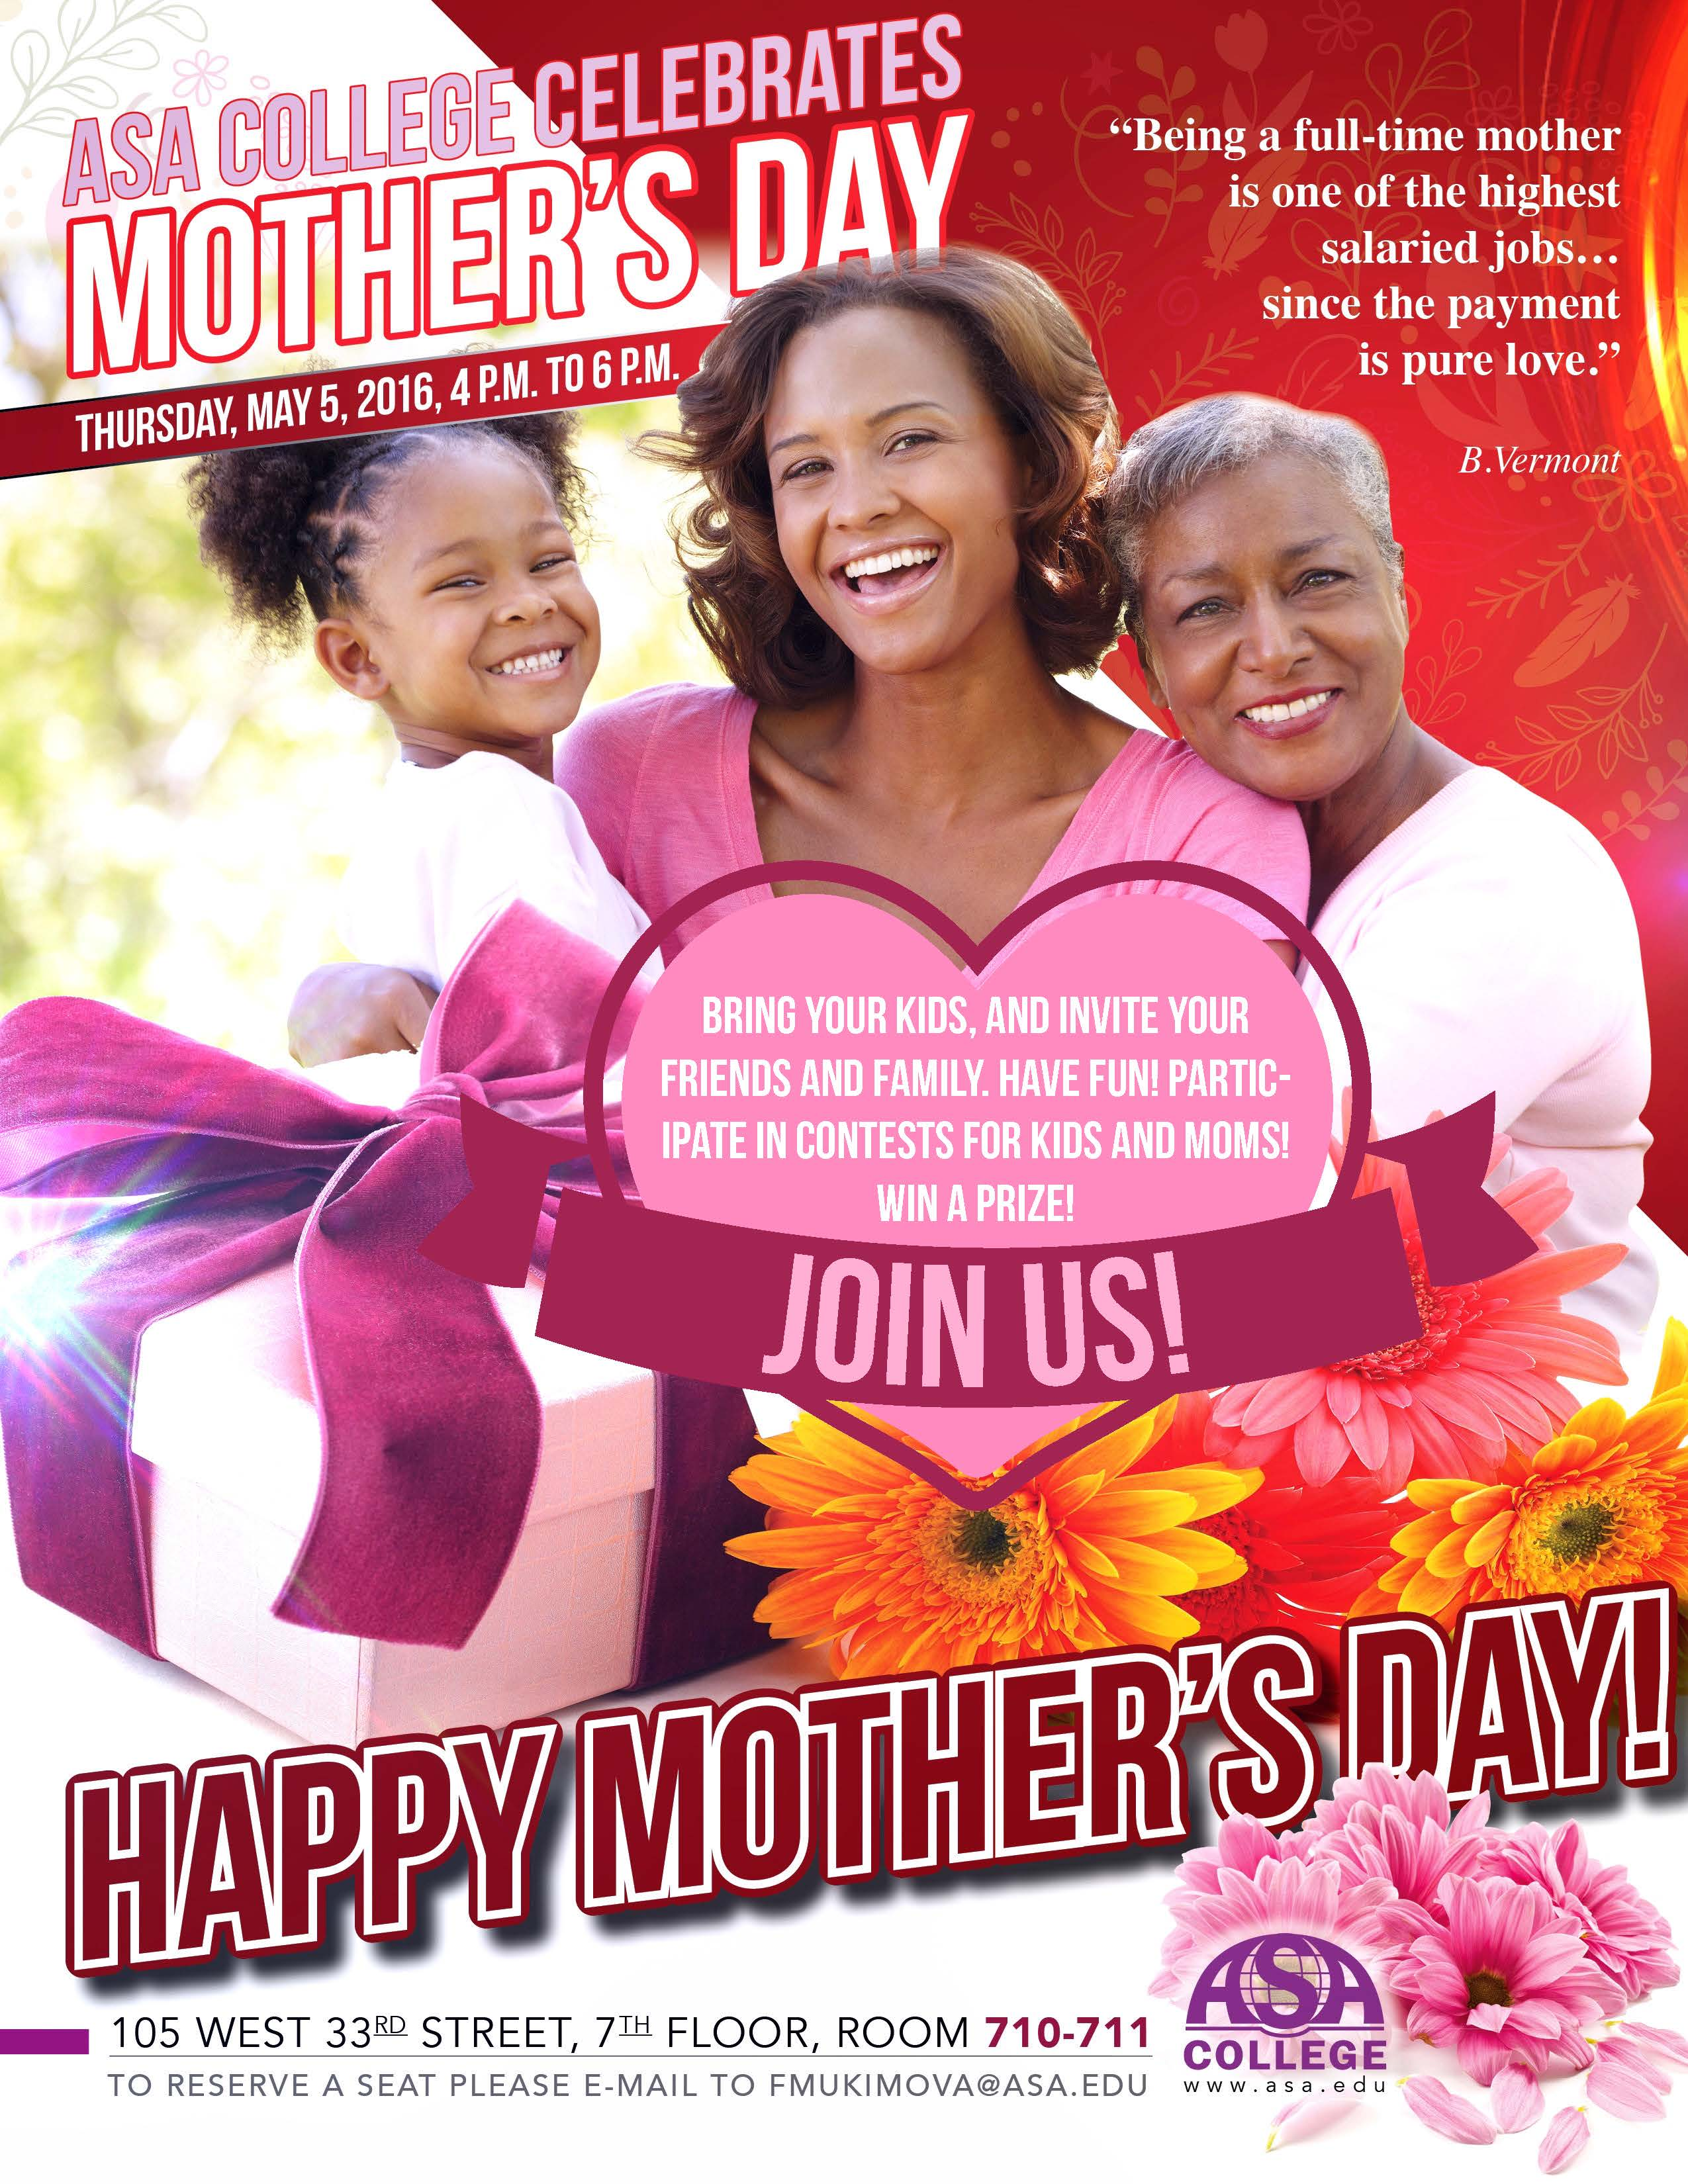 2016 Mother's Day Image